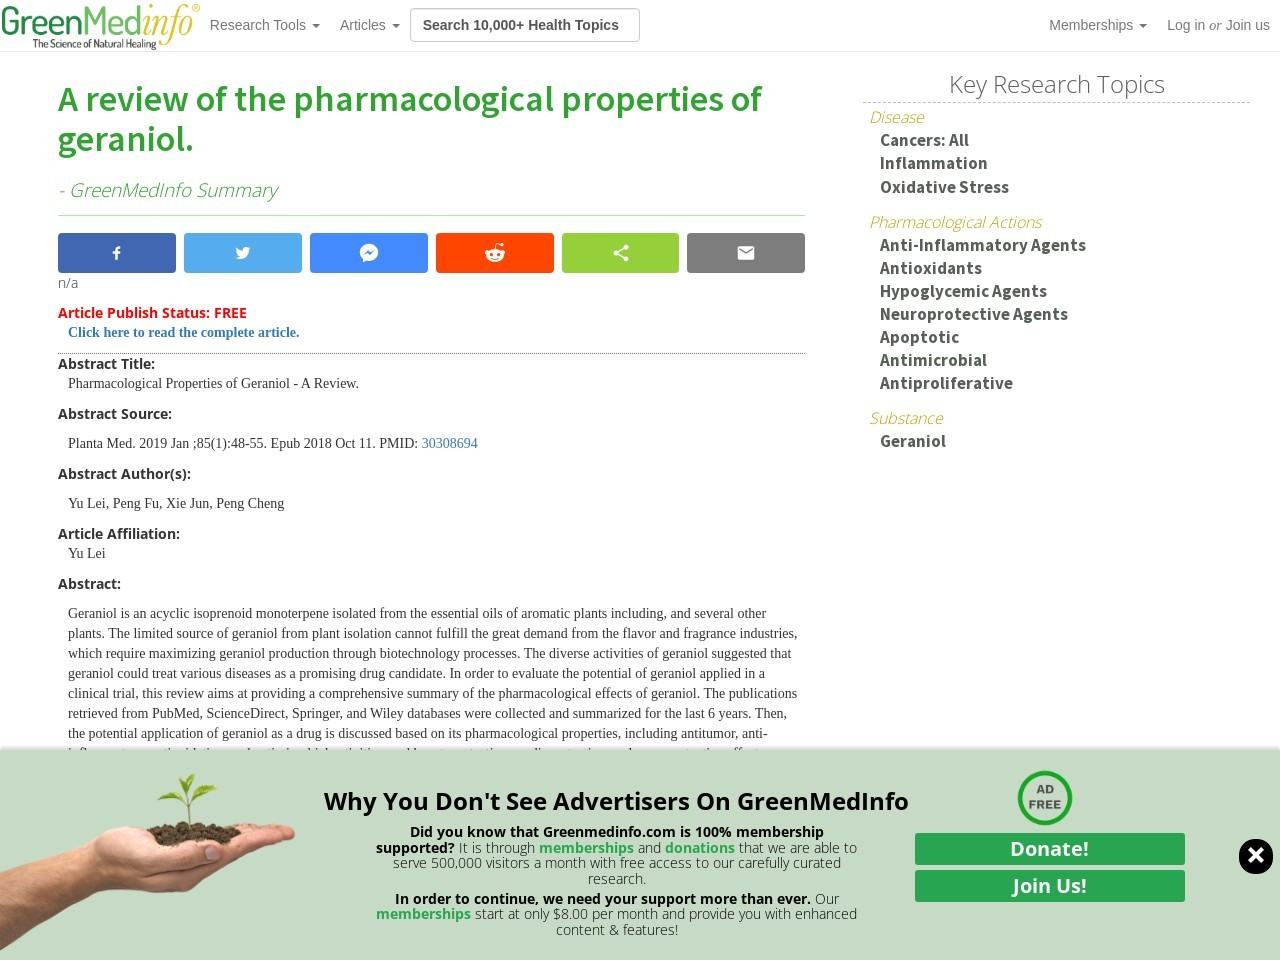 A review of the pharmacological properties of geraniol.